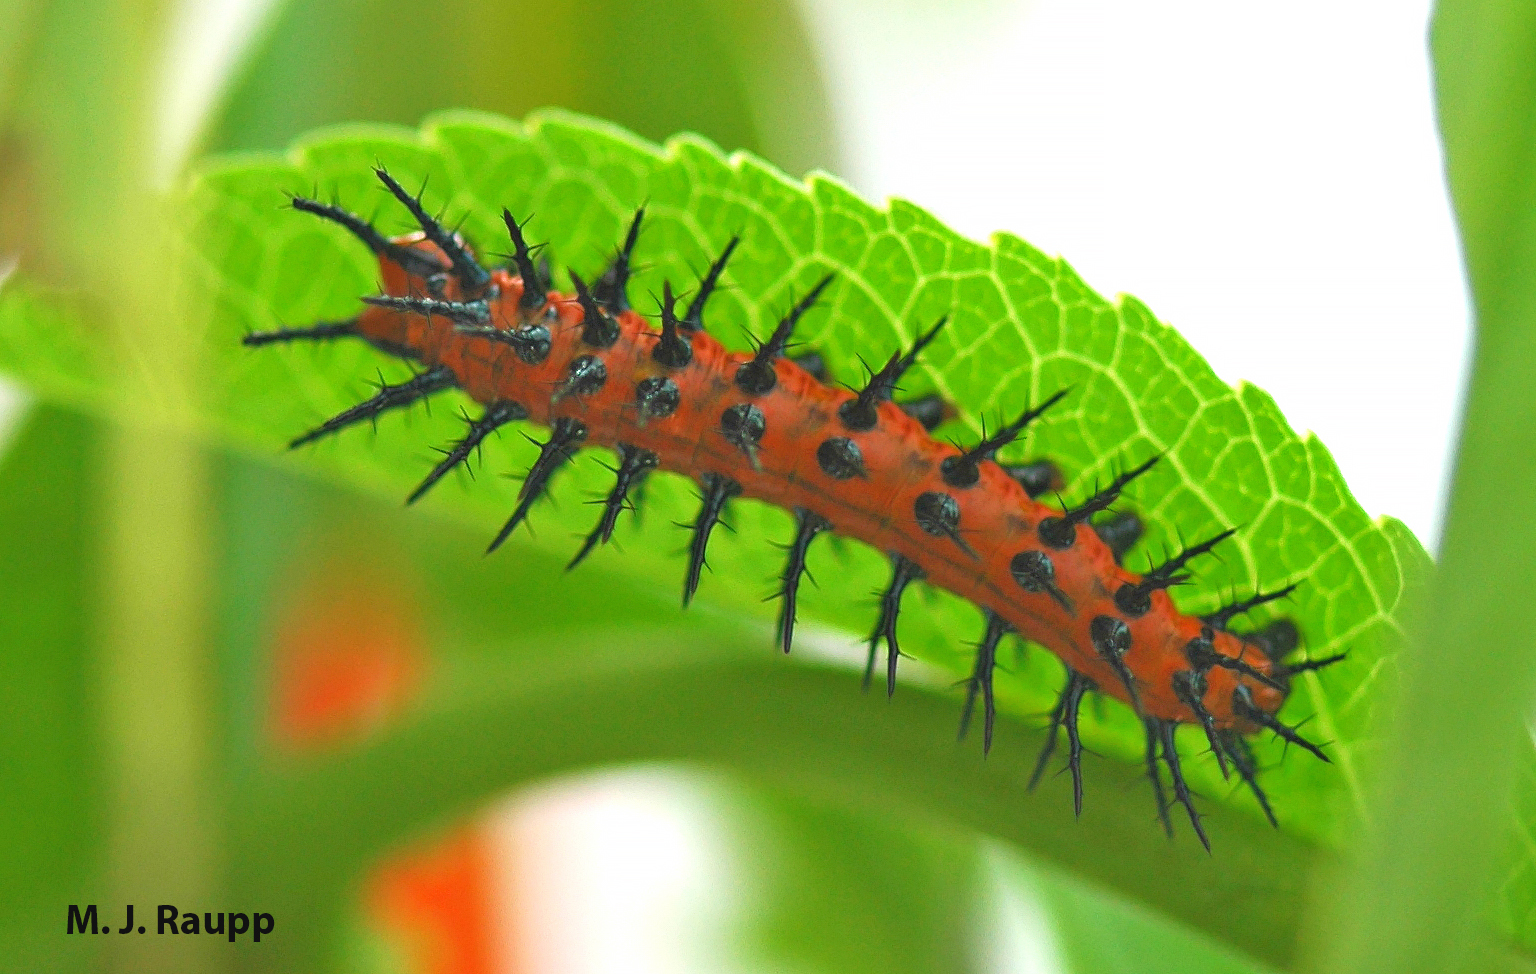 """800x600            800x600       Striking contrasts of orange body and black spines may serve as a warning to predators to avoid making a meal of Gulf fritillary caterpillars .     Normal   0           false   false   false     EN-US   X-NONE   X-NONE                                  MicrosoftInternetExplorer4                                                                                                                                                                                                                                                                                                                                     /* Style Definitions */  table.MsoNormalTable {mso-style-name:""""Table Normal""""; mso-tstyle-rowband-size:0; mso-tstyle-colband-size:0; mso-style-noshow:yes; mso-style-priority:99; mso-style-parent:""""""""; mso-padding-alt:0in 5.4pt 0in 5.4pt; mso-para-margin:0in; mso-para-margin-bottom:.0001pt; mso-pagination:widow-orphan; font-size:10.0pt; font-family:""""Times New Roman"""",""""serif"""";}"""